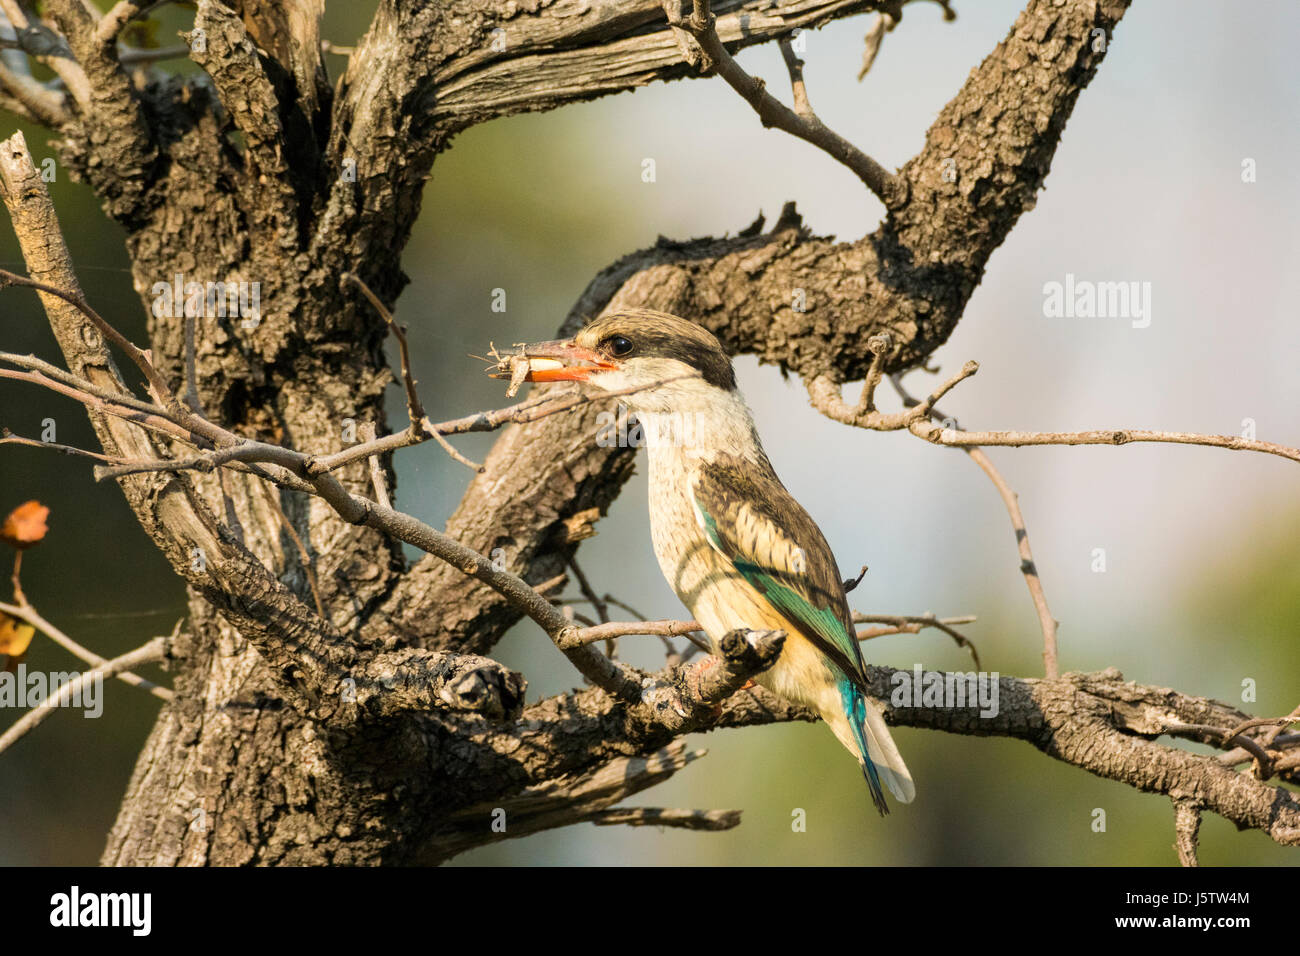 Striped kingfisher  Halcyon chelicuti perched in tree with kill - Stock Image